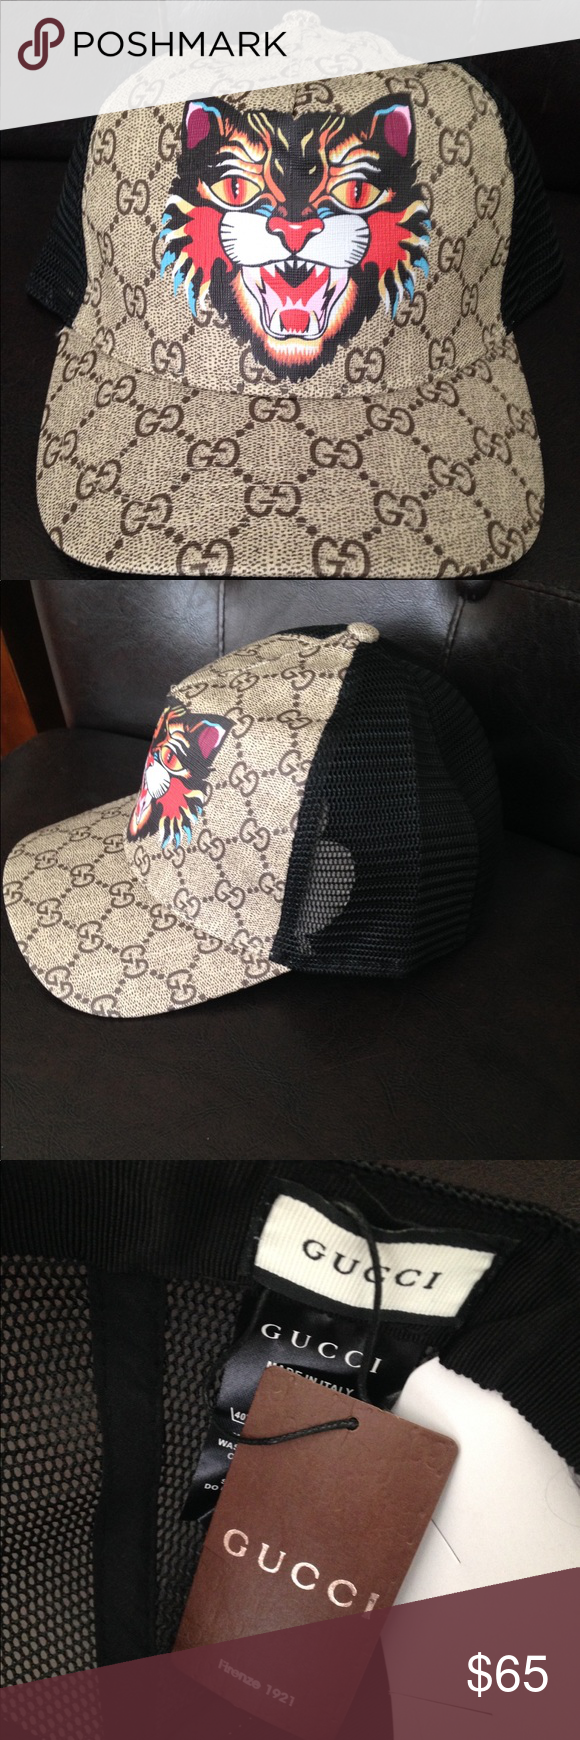 Gucci Hat New hat! Tan GG print with angry cat logo on front! Adjustable 5e6e93ce8f1a